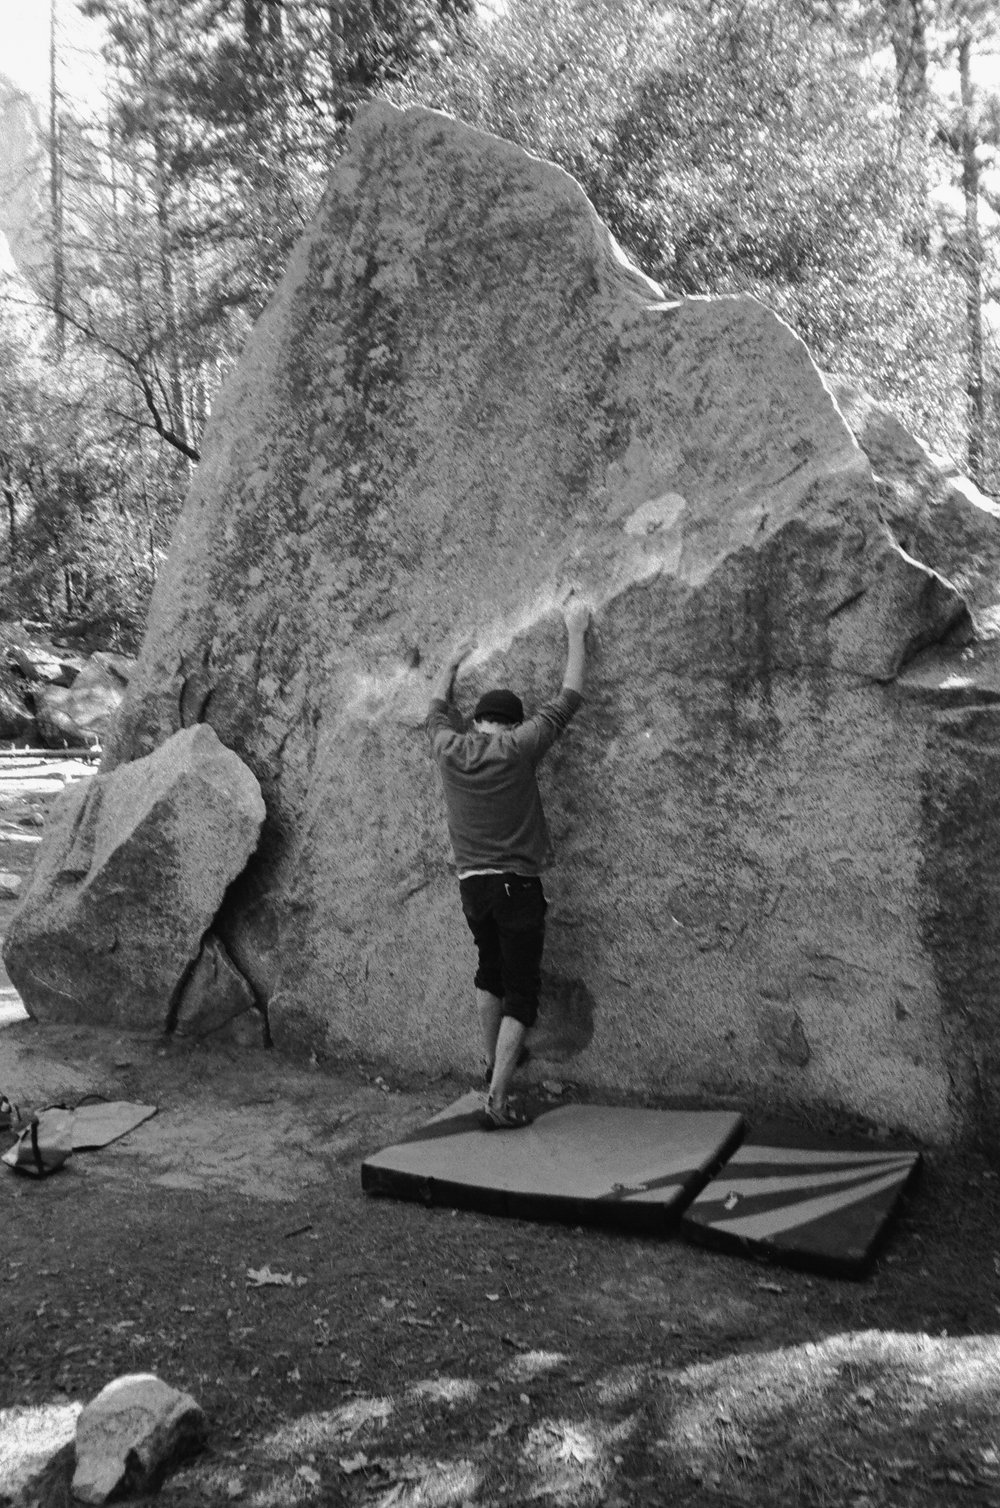 boulder routes at camp 4 in yosemite